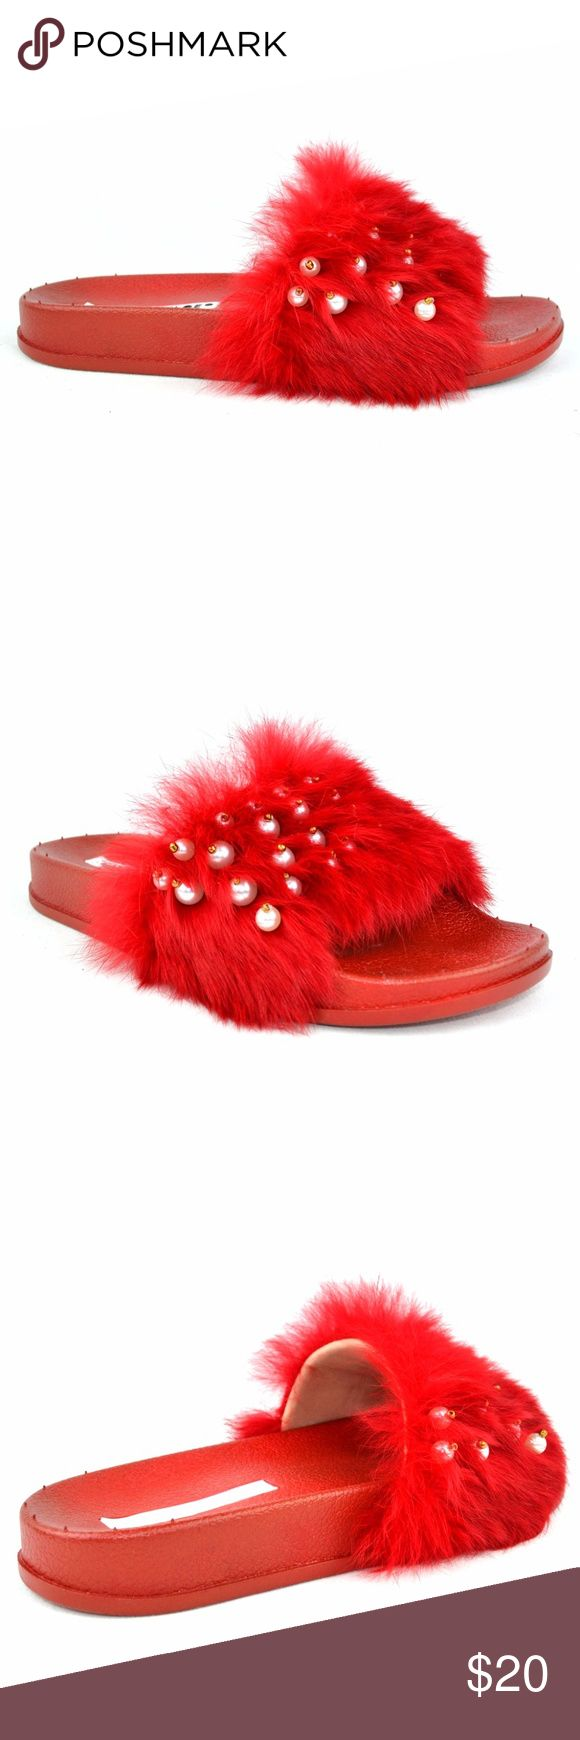 "Women's Red Flip Flop Flat With Pearls on Furry Synthetic Imported Rubber sole Platform measures approximately 1.00"" Open Toe Pearls on Furry Women's Fashion Flip Flop Approx 1.5 Heel Height Chase & Chloe Furry-5 Chase & Chloe Shoes Flats & Loafers"